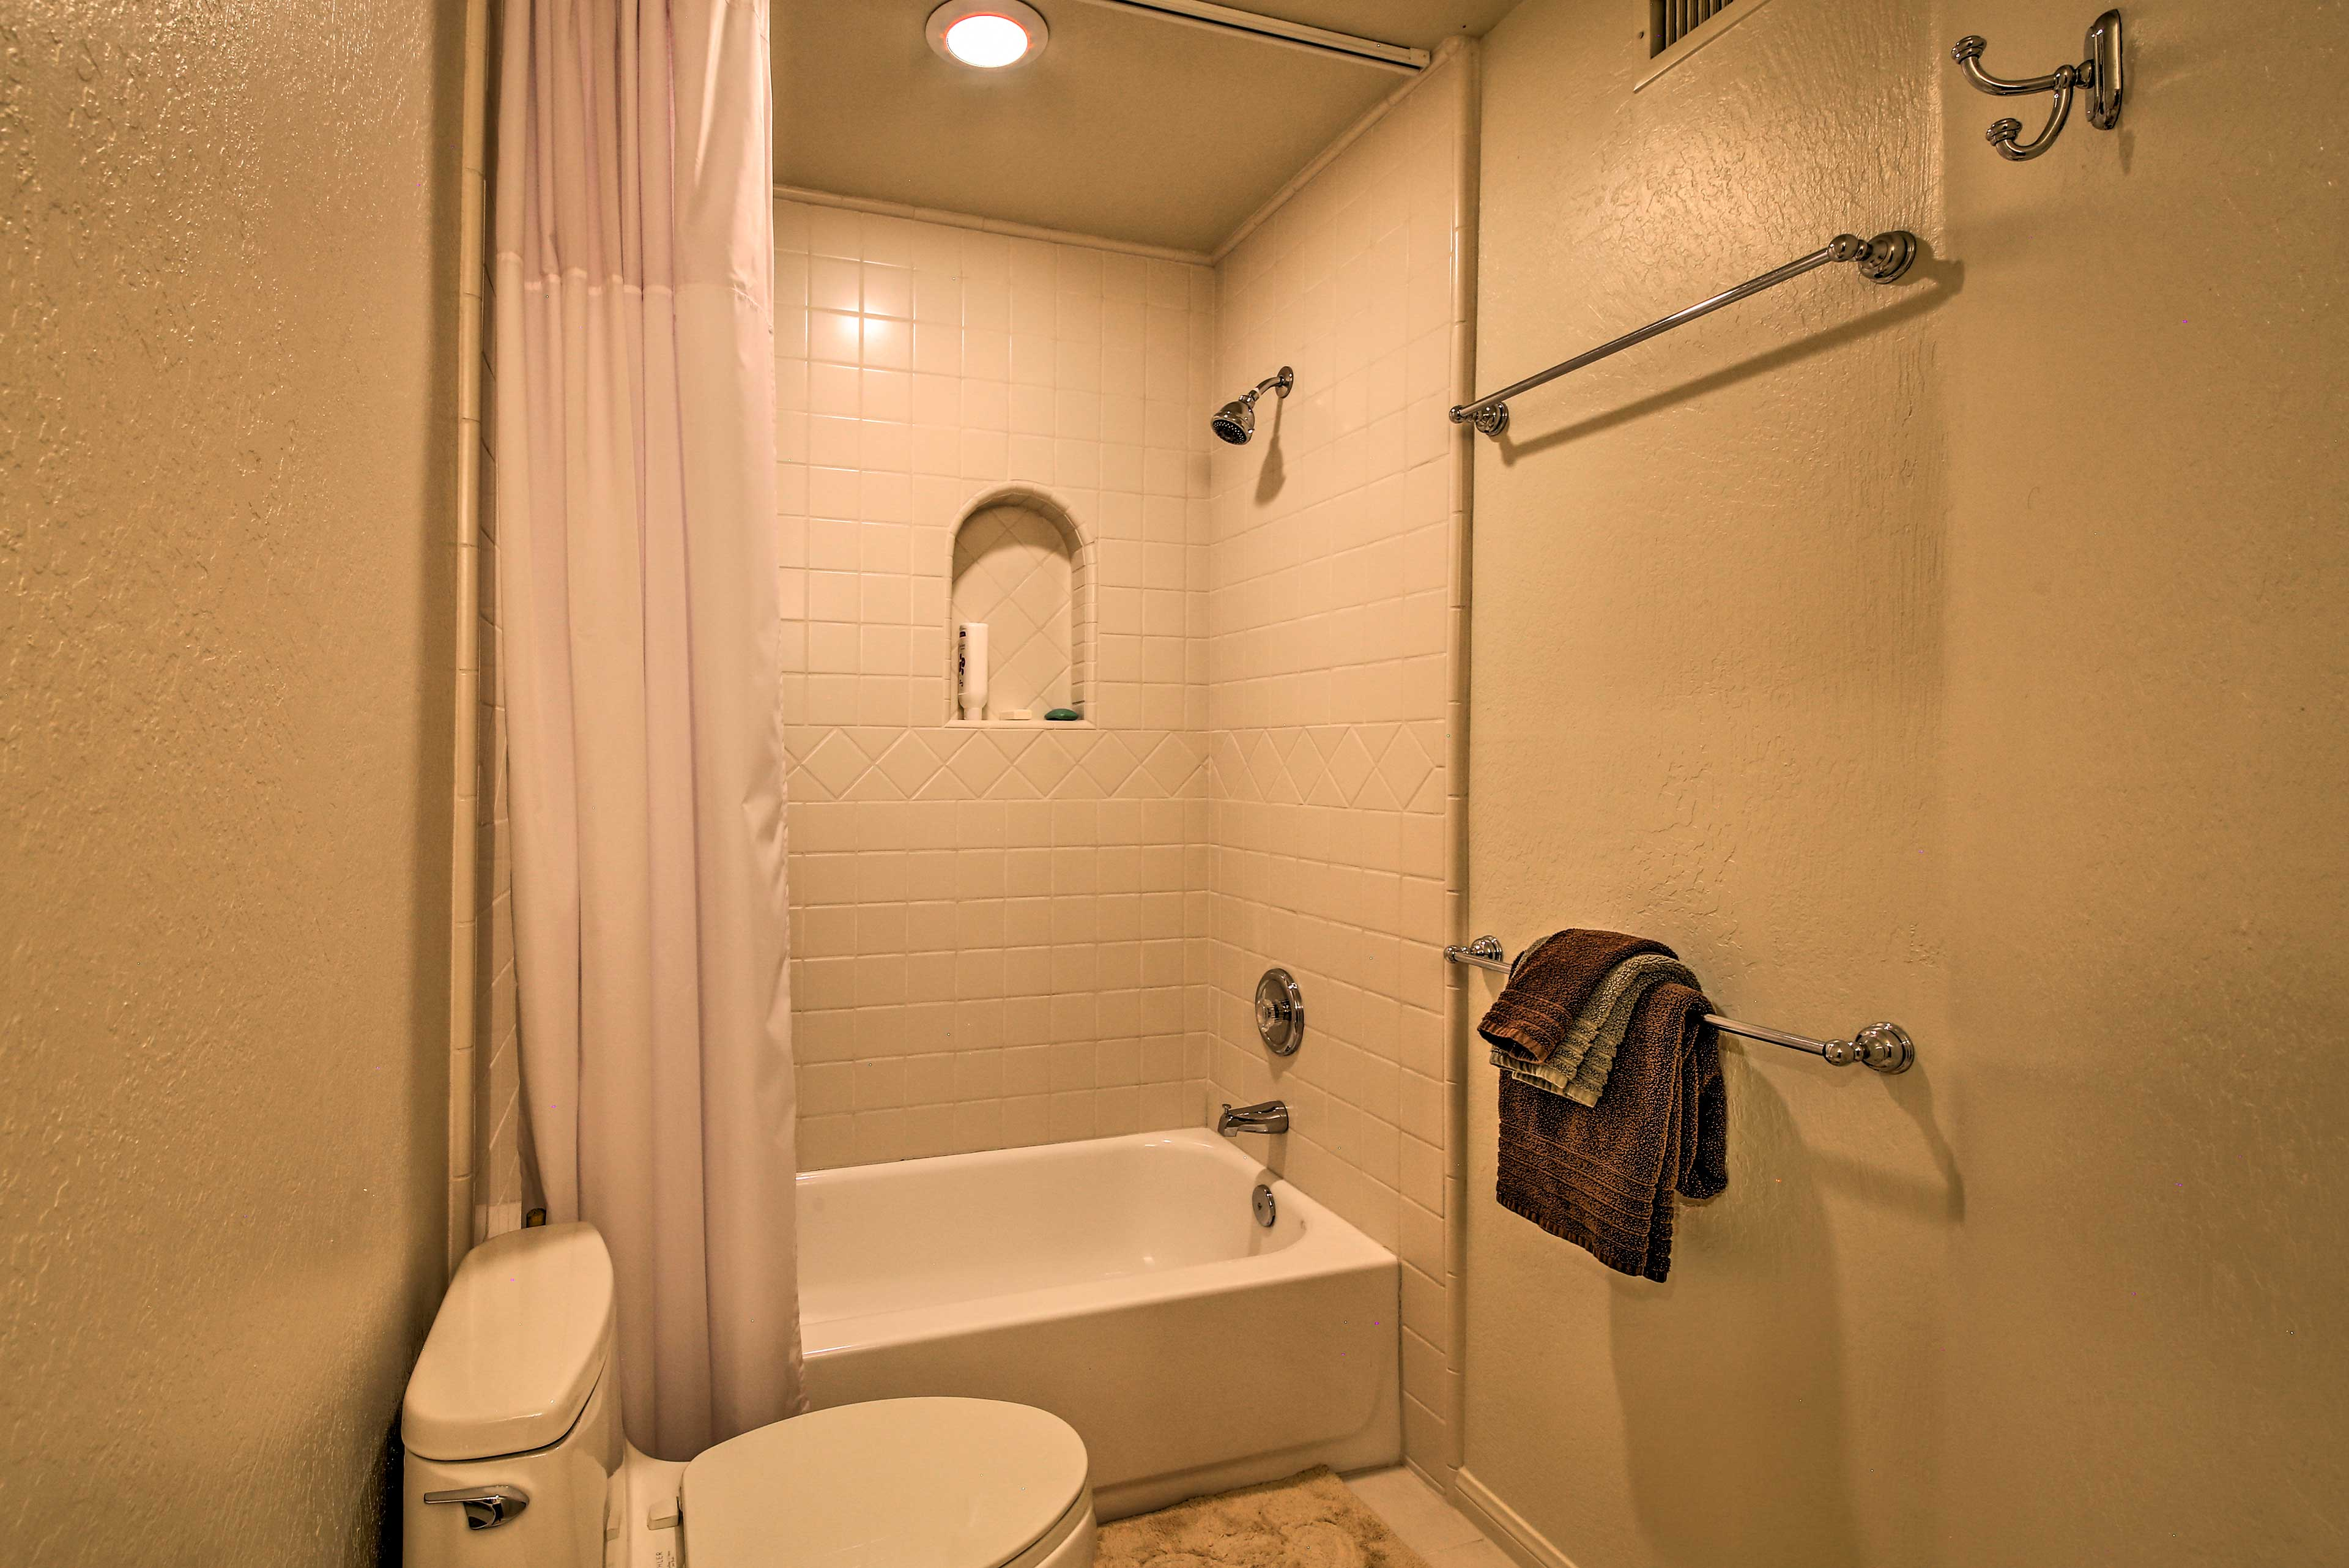 You'll never have to wait in line with the bathrooms that this home offers.